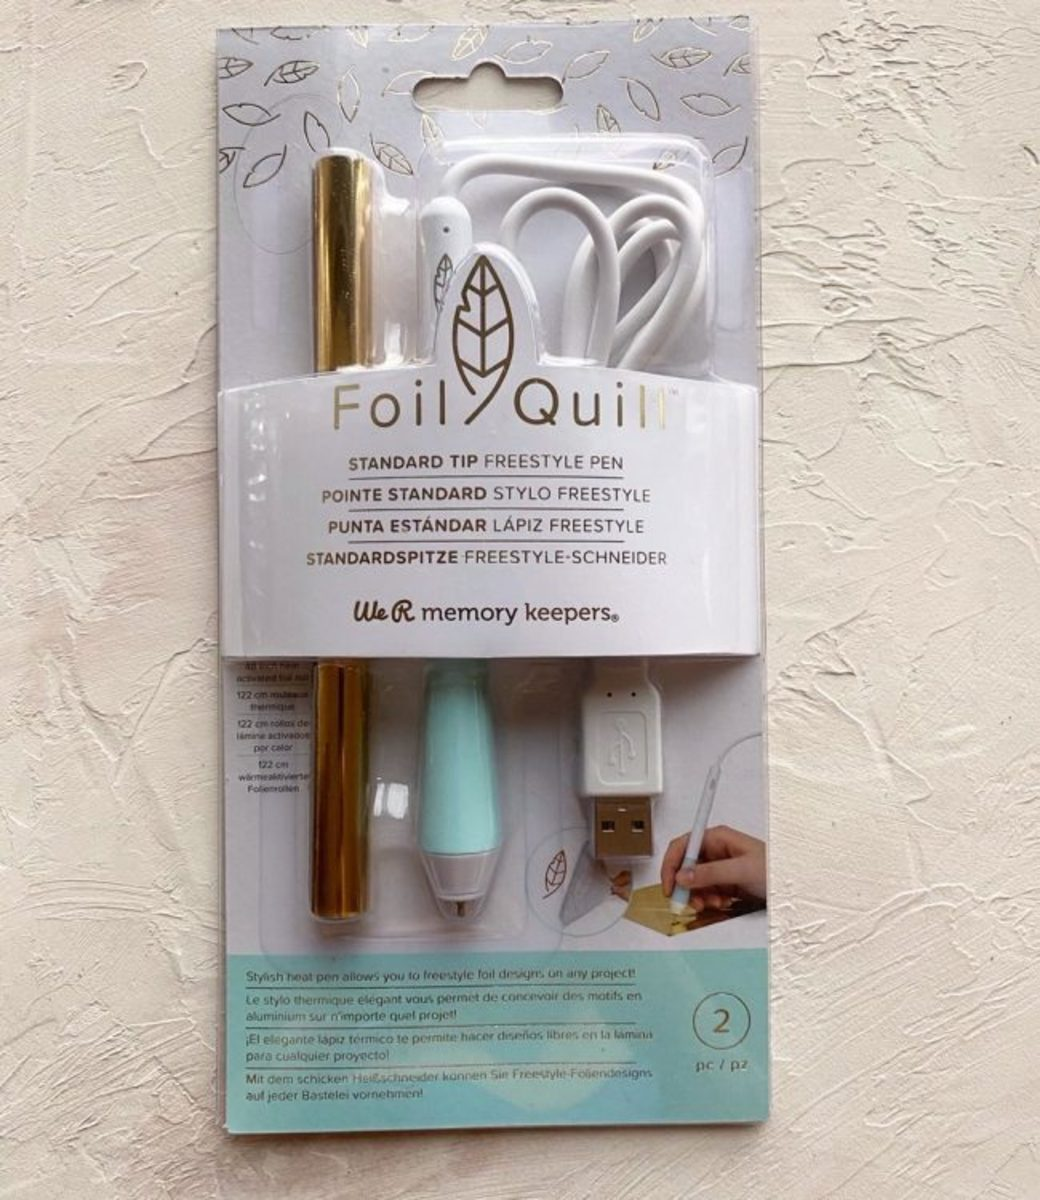 foil-quill-tips-and-ideas